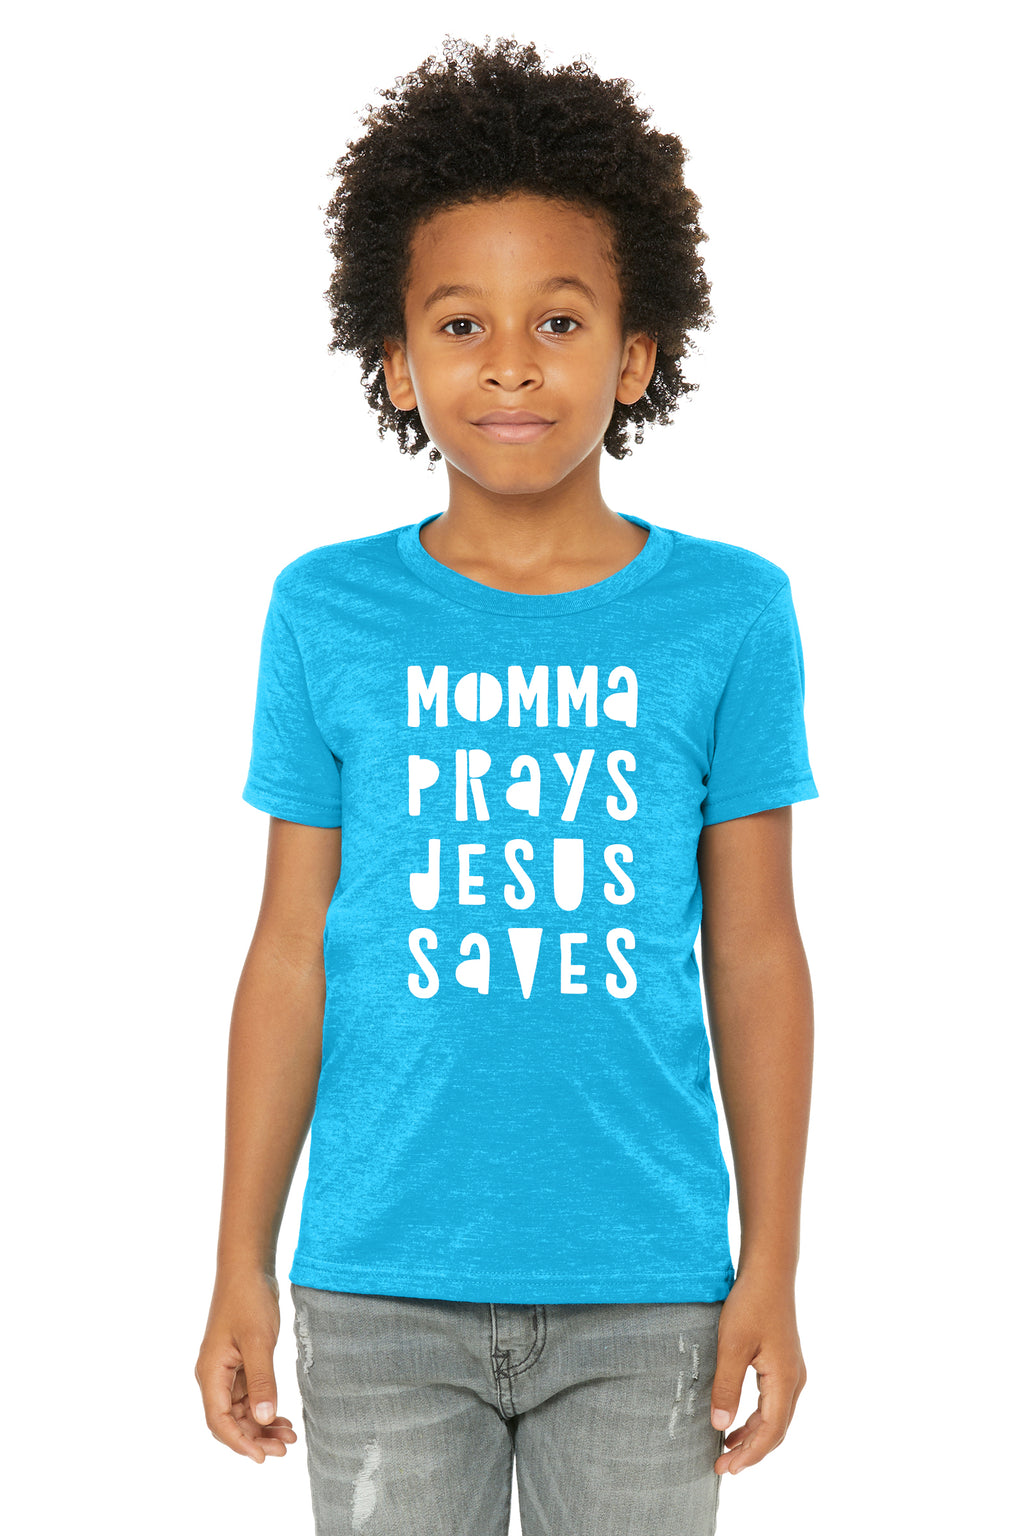 (PRE-ORDER) Momma Prays Jesus Saves™️ T-Shirt | Neon Blue